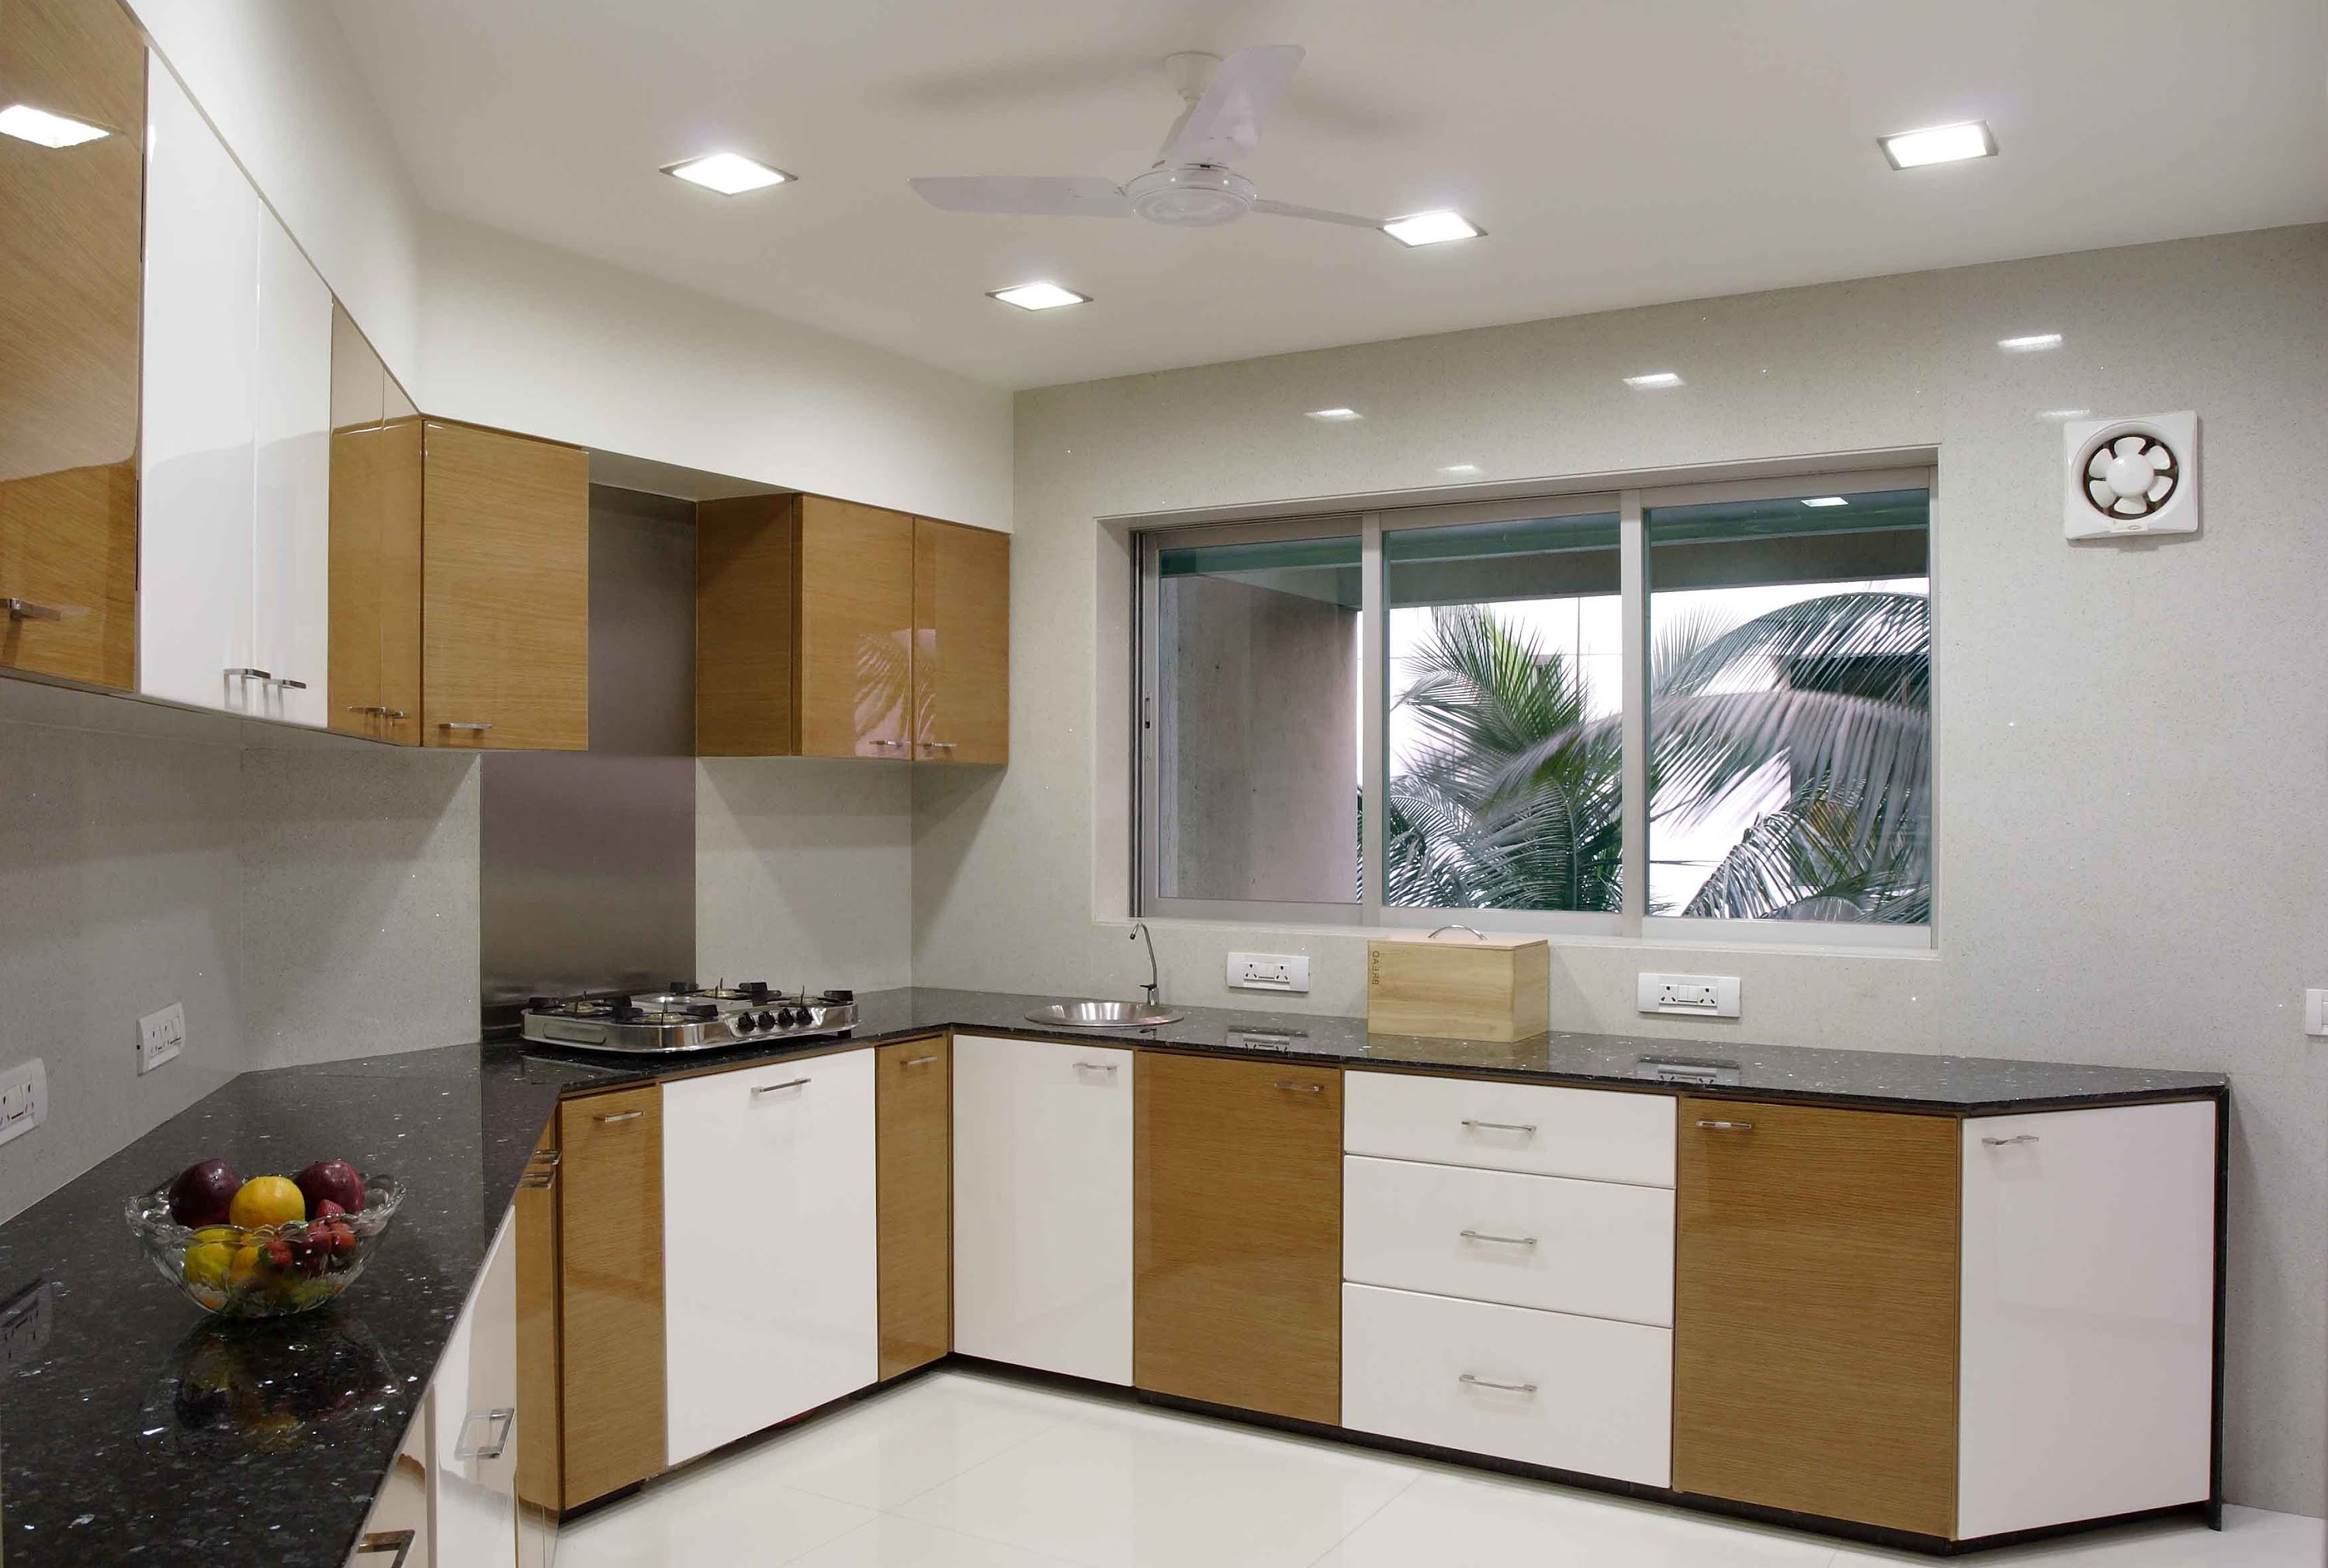 Amazing Modular Kitchen Designs For Small Kitchens Small Kitchen Designs - YouTube modular kitchen designs for small kitchens